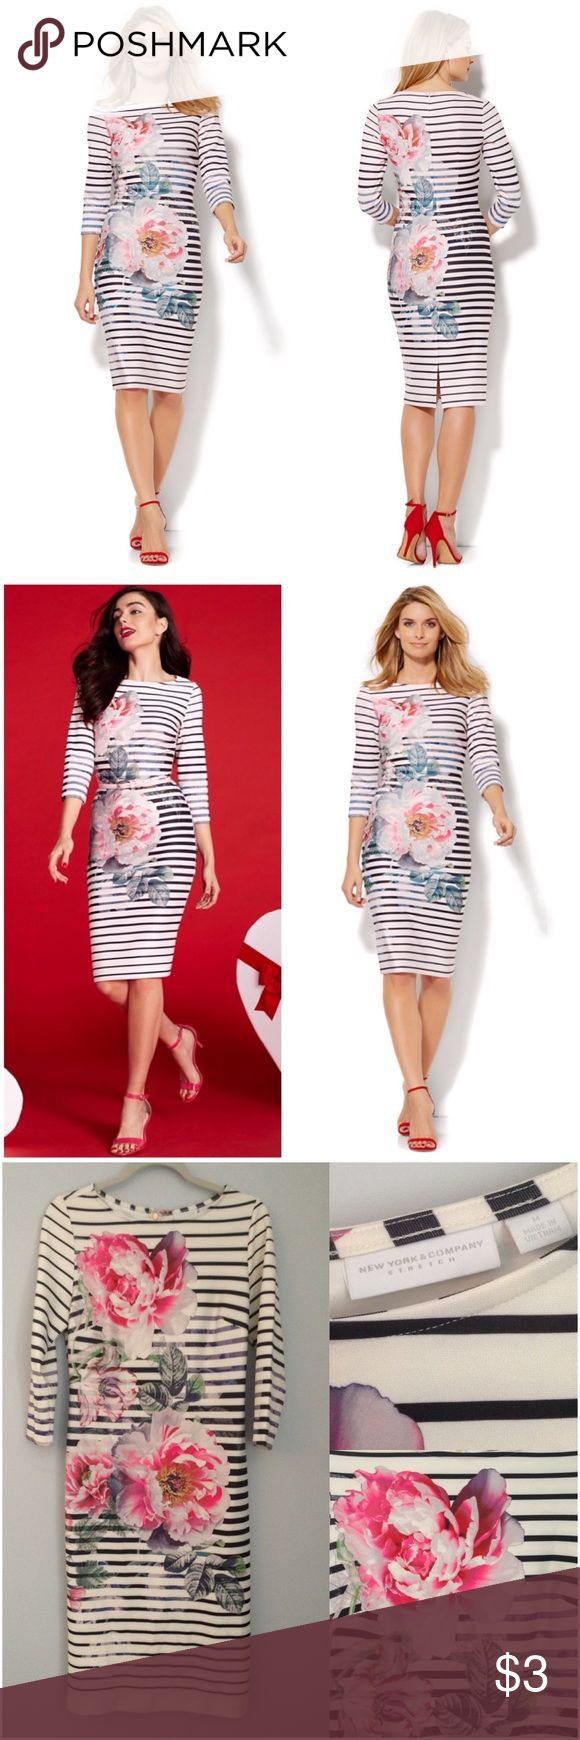 ✨SALE✨ Scuba Striped/Floral Sheath Midi Dress New With Tags. New York & Company Floral/Stripe printed scuba sheath midi dress. Size: M. Bold blooms soften the graphic stripes on our sophisticated sheath dress, designed in scuba fabric with a timeless bateau neckline. Online Exclusive! Details: Boat-neck.Darts at bust line. Invisible back zipper. Princess seams on back.Back vent. 3/4-length sleeve. Straight silhouette.Shoulder to hem length: 42-½ inches. 95% Polyester, 5% Spandex. New York…